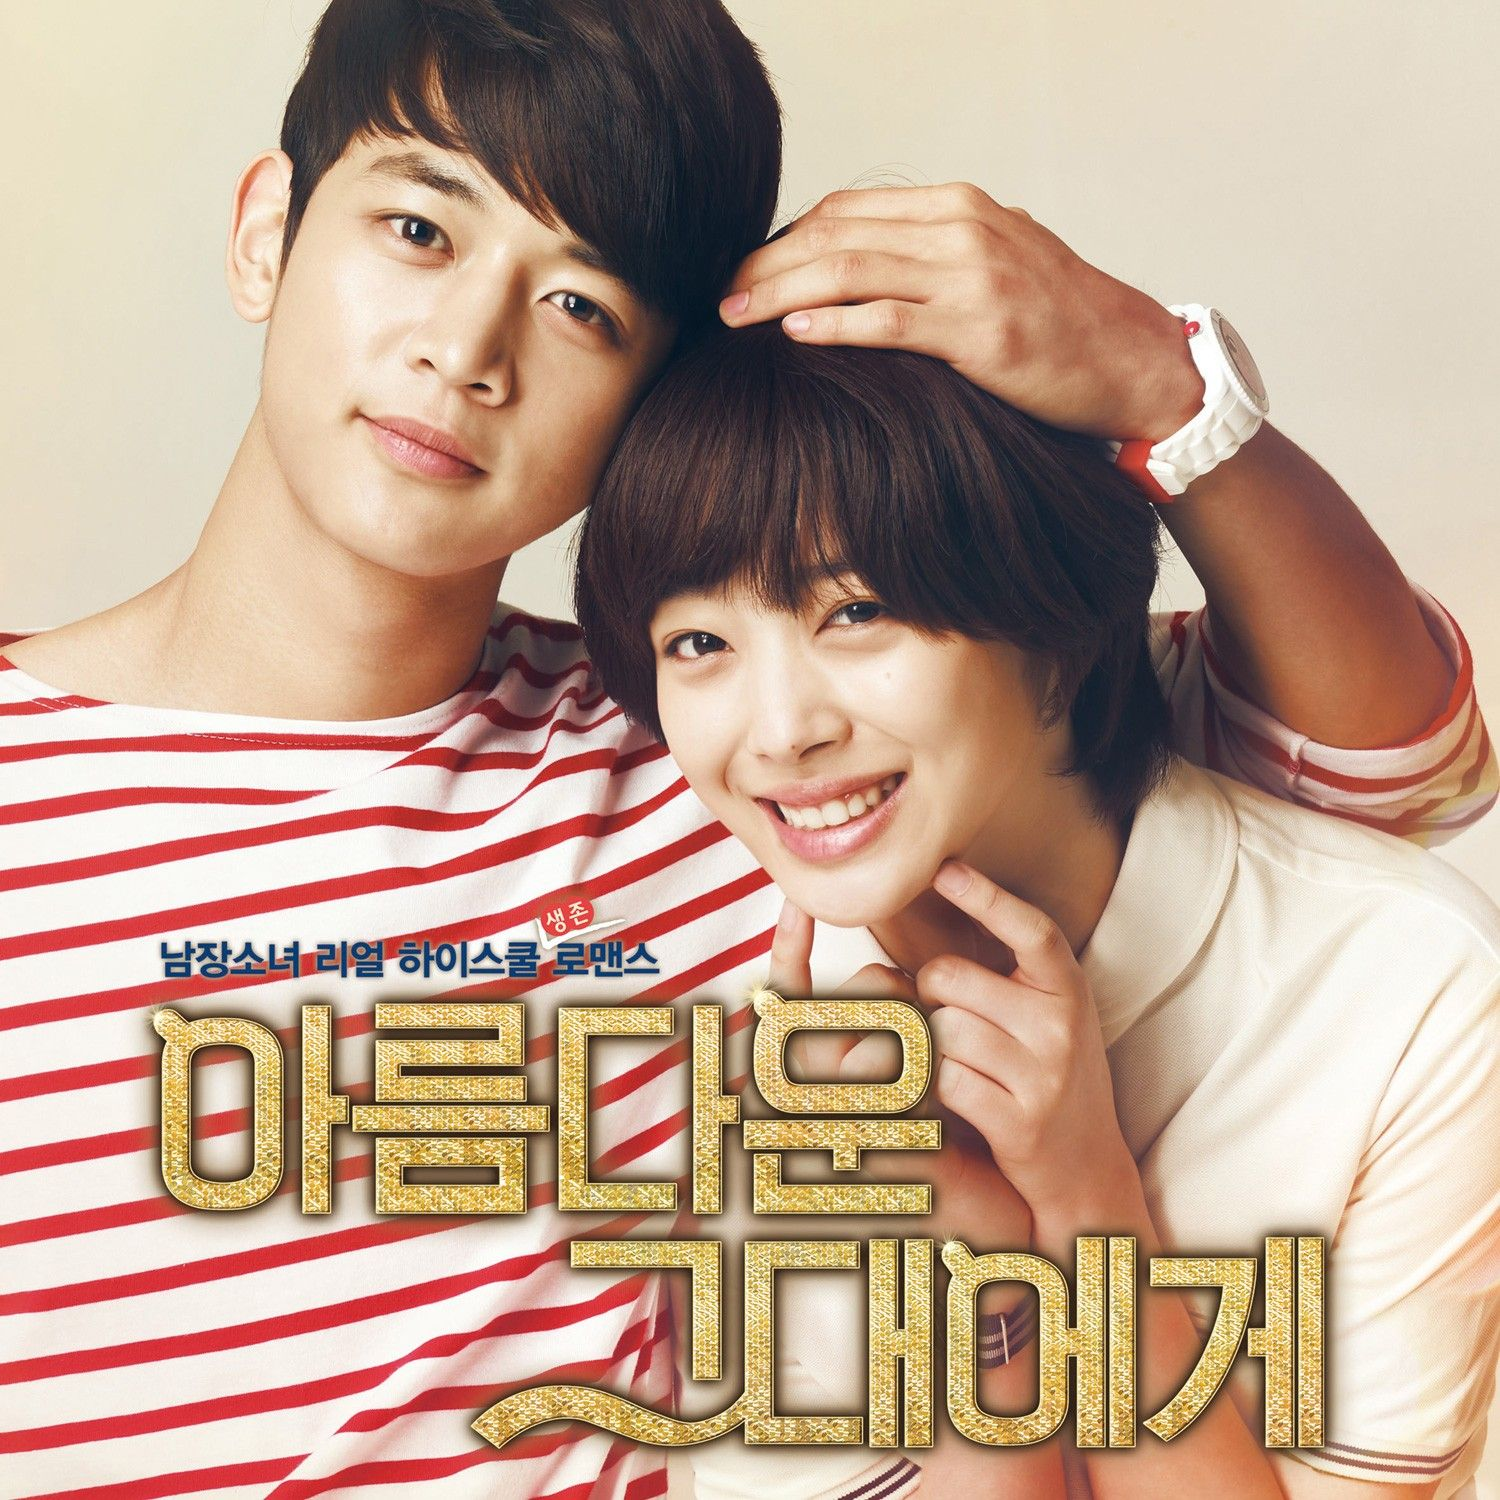 [Single] Sunny, Luna & Onew - To the Beautiful You OST 'It's Me'